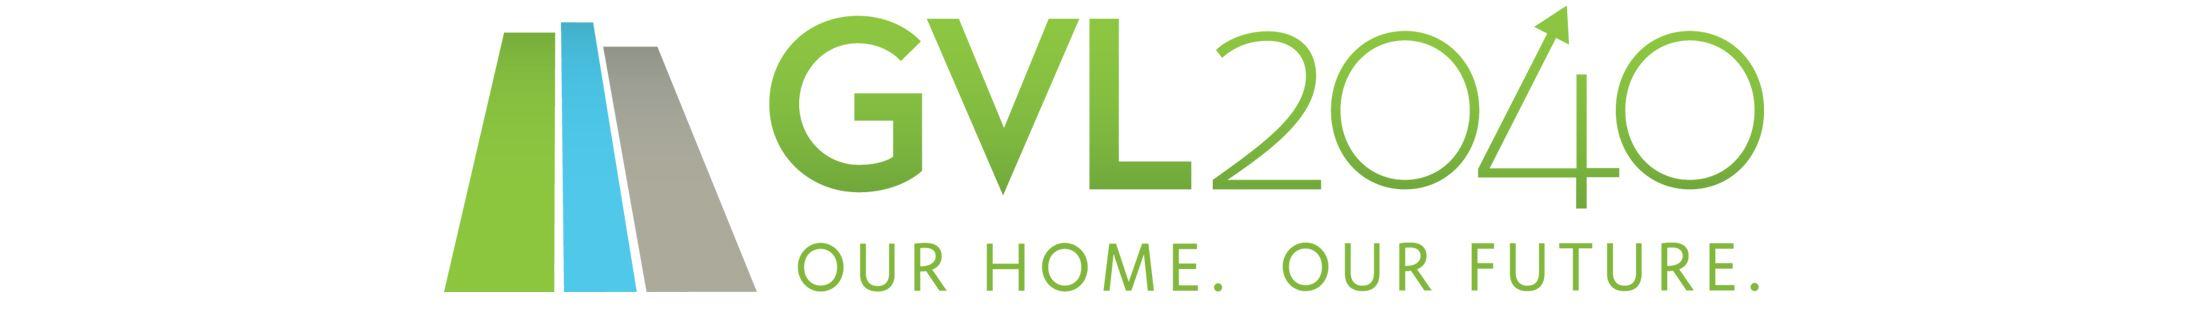 Gvl2040 comp plan logo